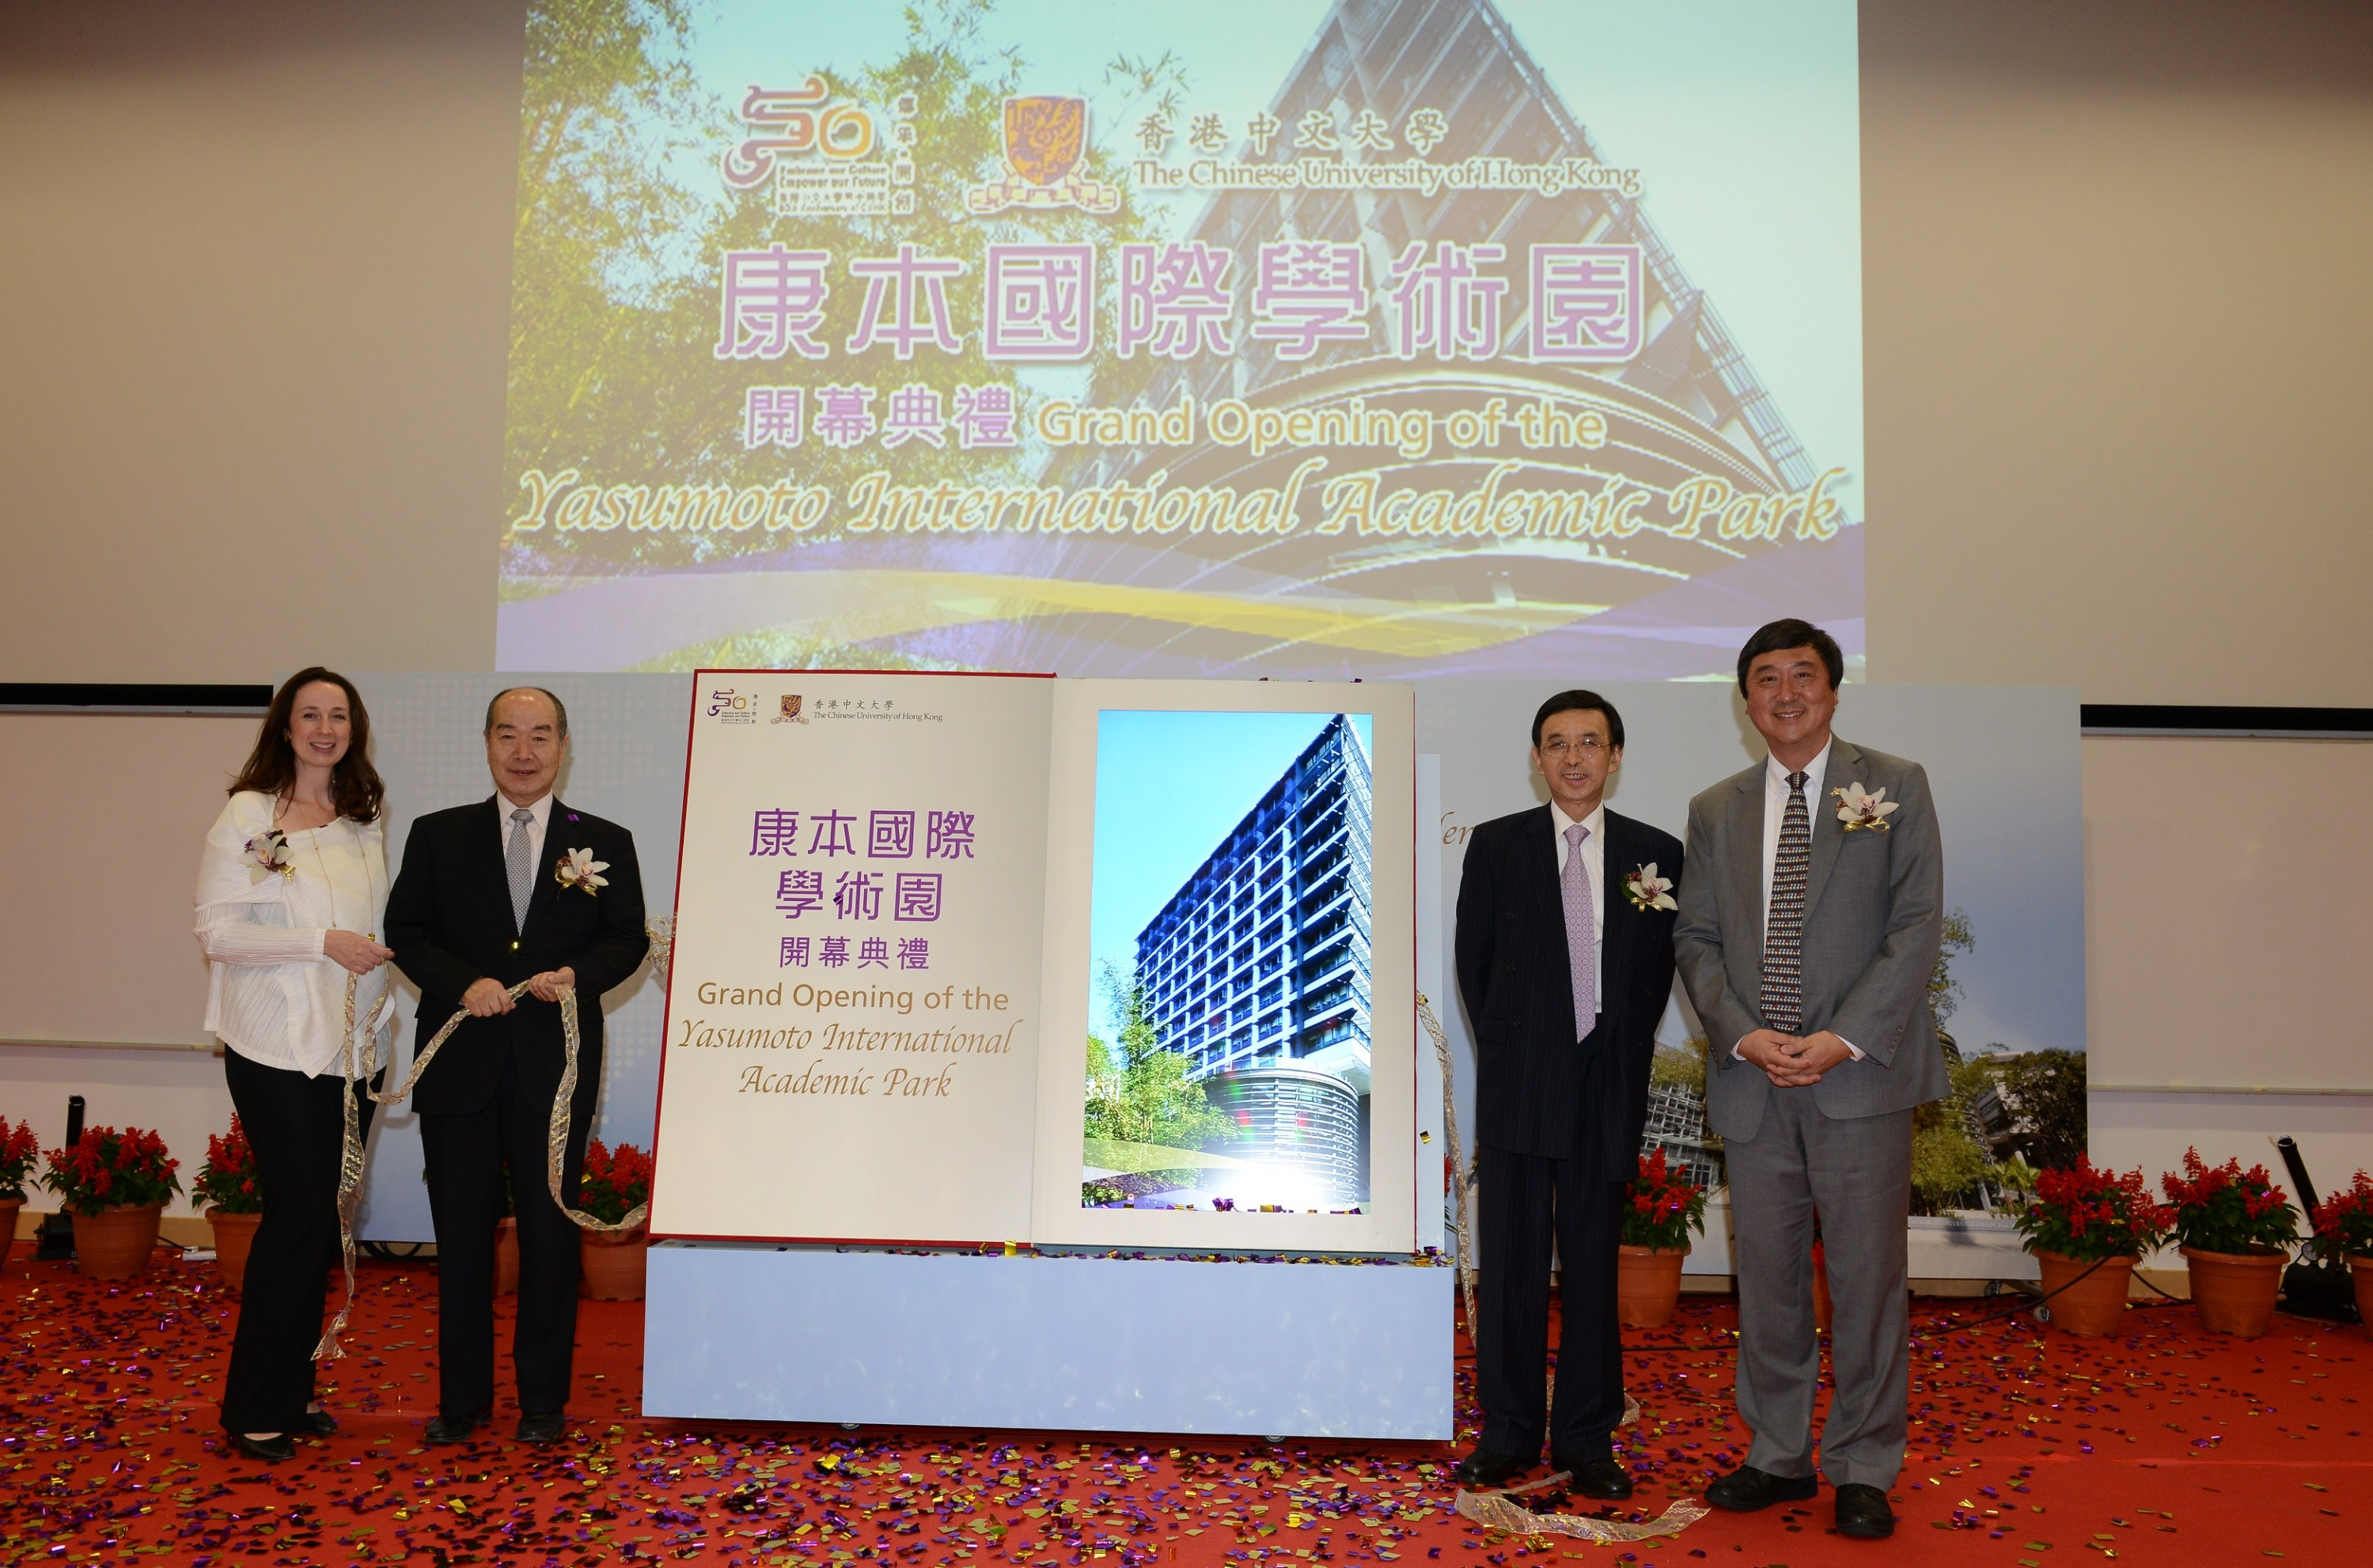 (From left) Dr. and Mrs. Alex Yasumoto, Dr. Vincent Cheng, Council Chairman of CUHK, and Prof. Joseph Sung, Vice-Chancellor and President of CUHK officiate at the Grand Opening of the Yasumoto International Academic Park.